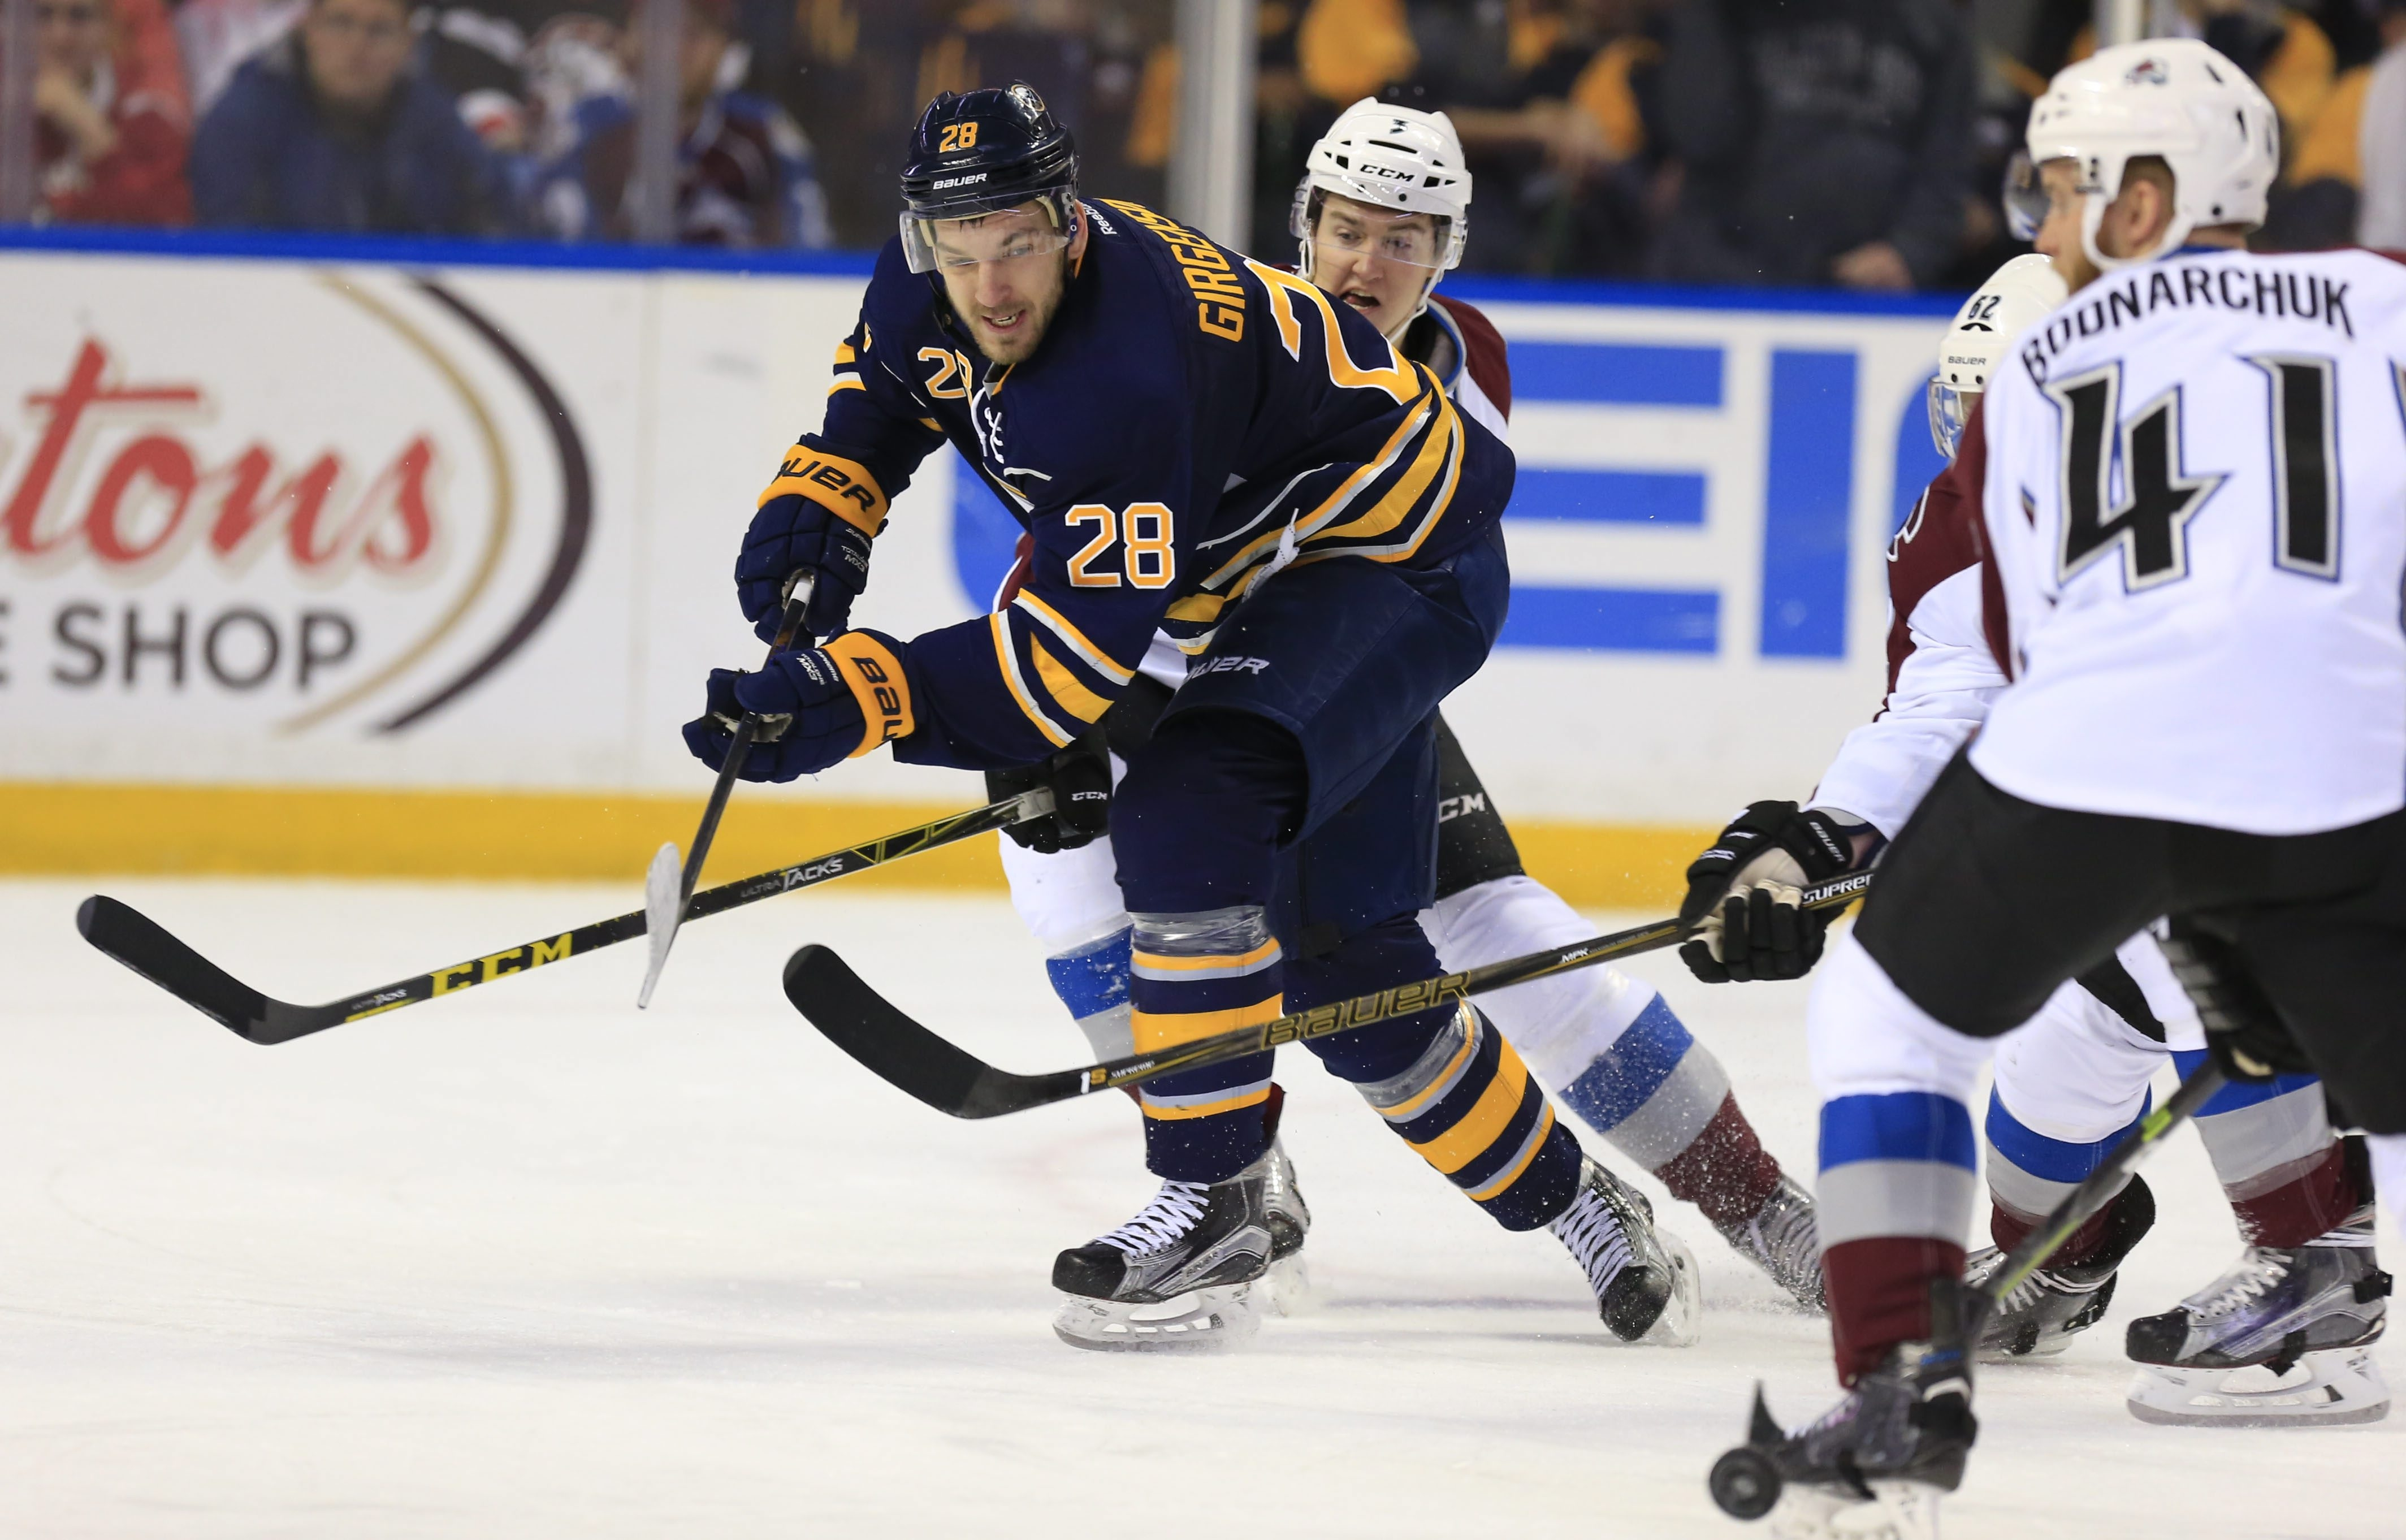 Sabres forward Zemgus Girgensons suffered declines in offensive production and in ice time in 2015-16. (Harry Scull Jr./Buffalo News)